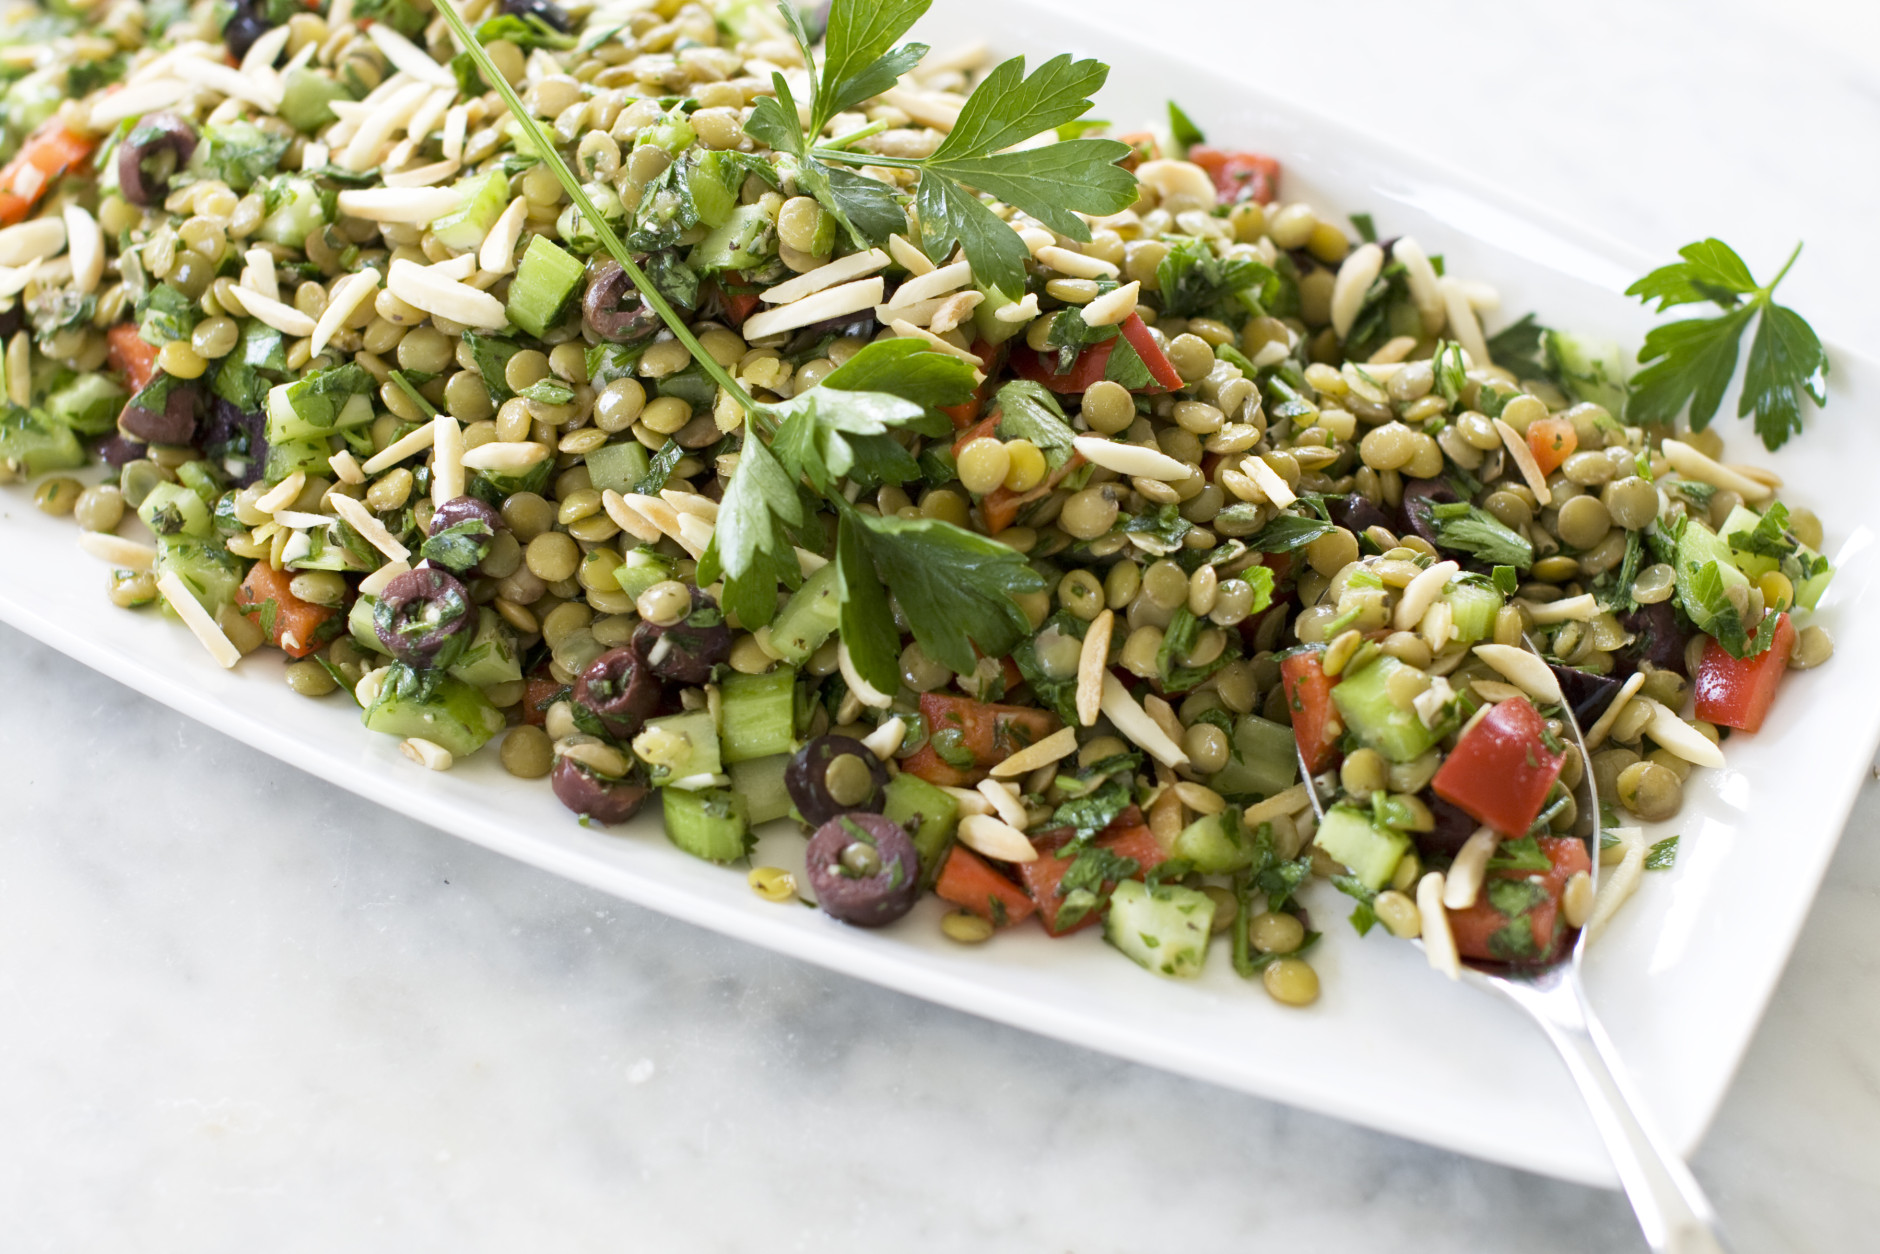 This July 29, 2013 photo shows lentil tabbouleh in Concord, N.H. (AP Photo/Matthew Mead)